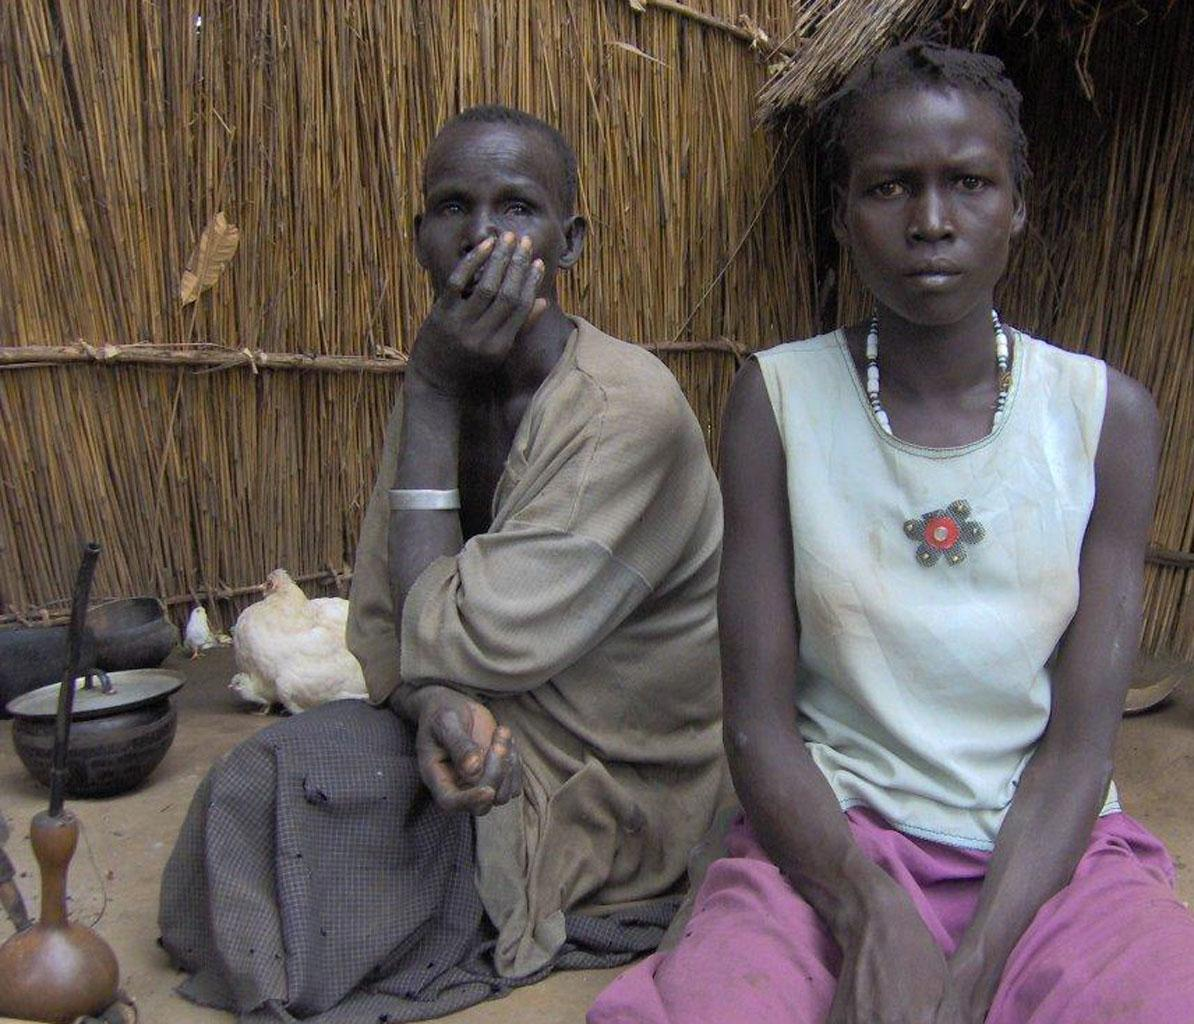 Ethiopia: Stop Land Grabbing and Restore Indigenous Peoples' Lands